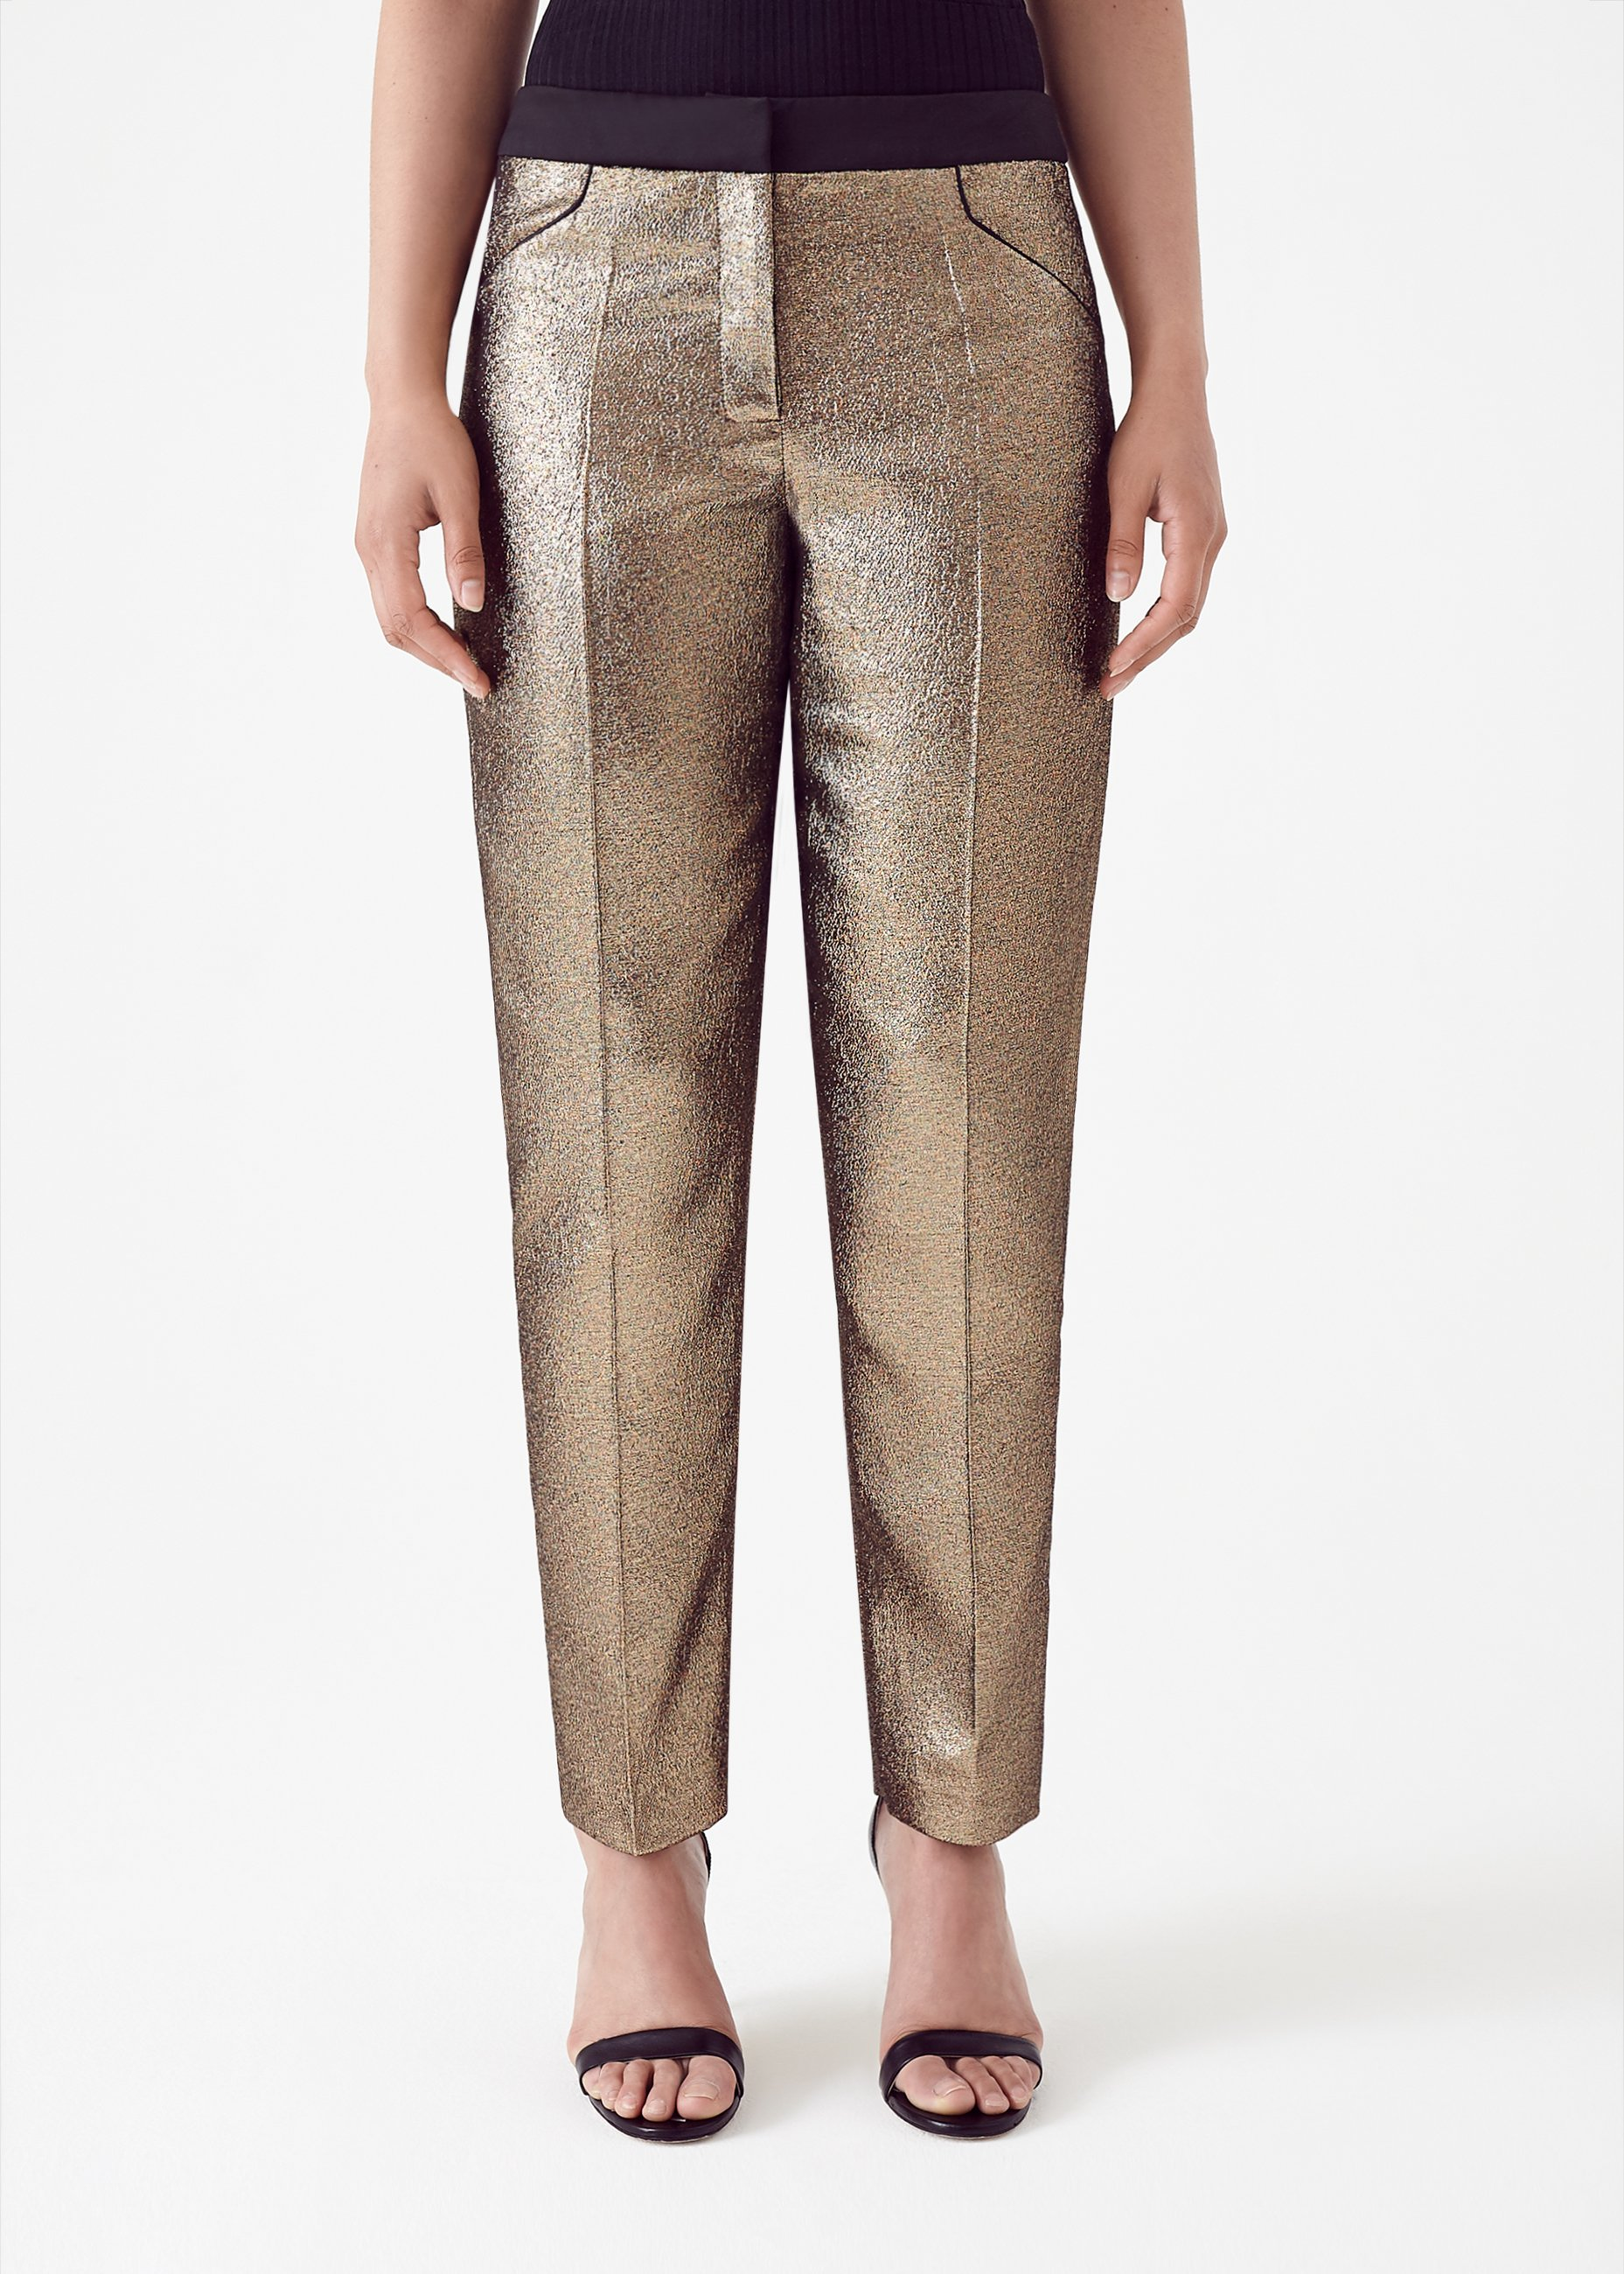 Aphrodite Trousers by Bozena Jankowska on curated-crowd.com